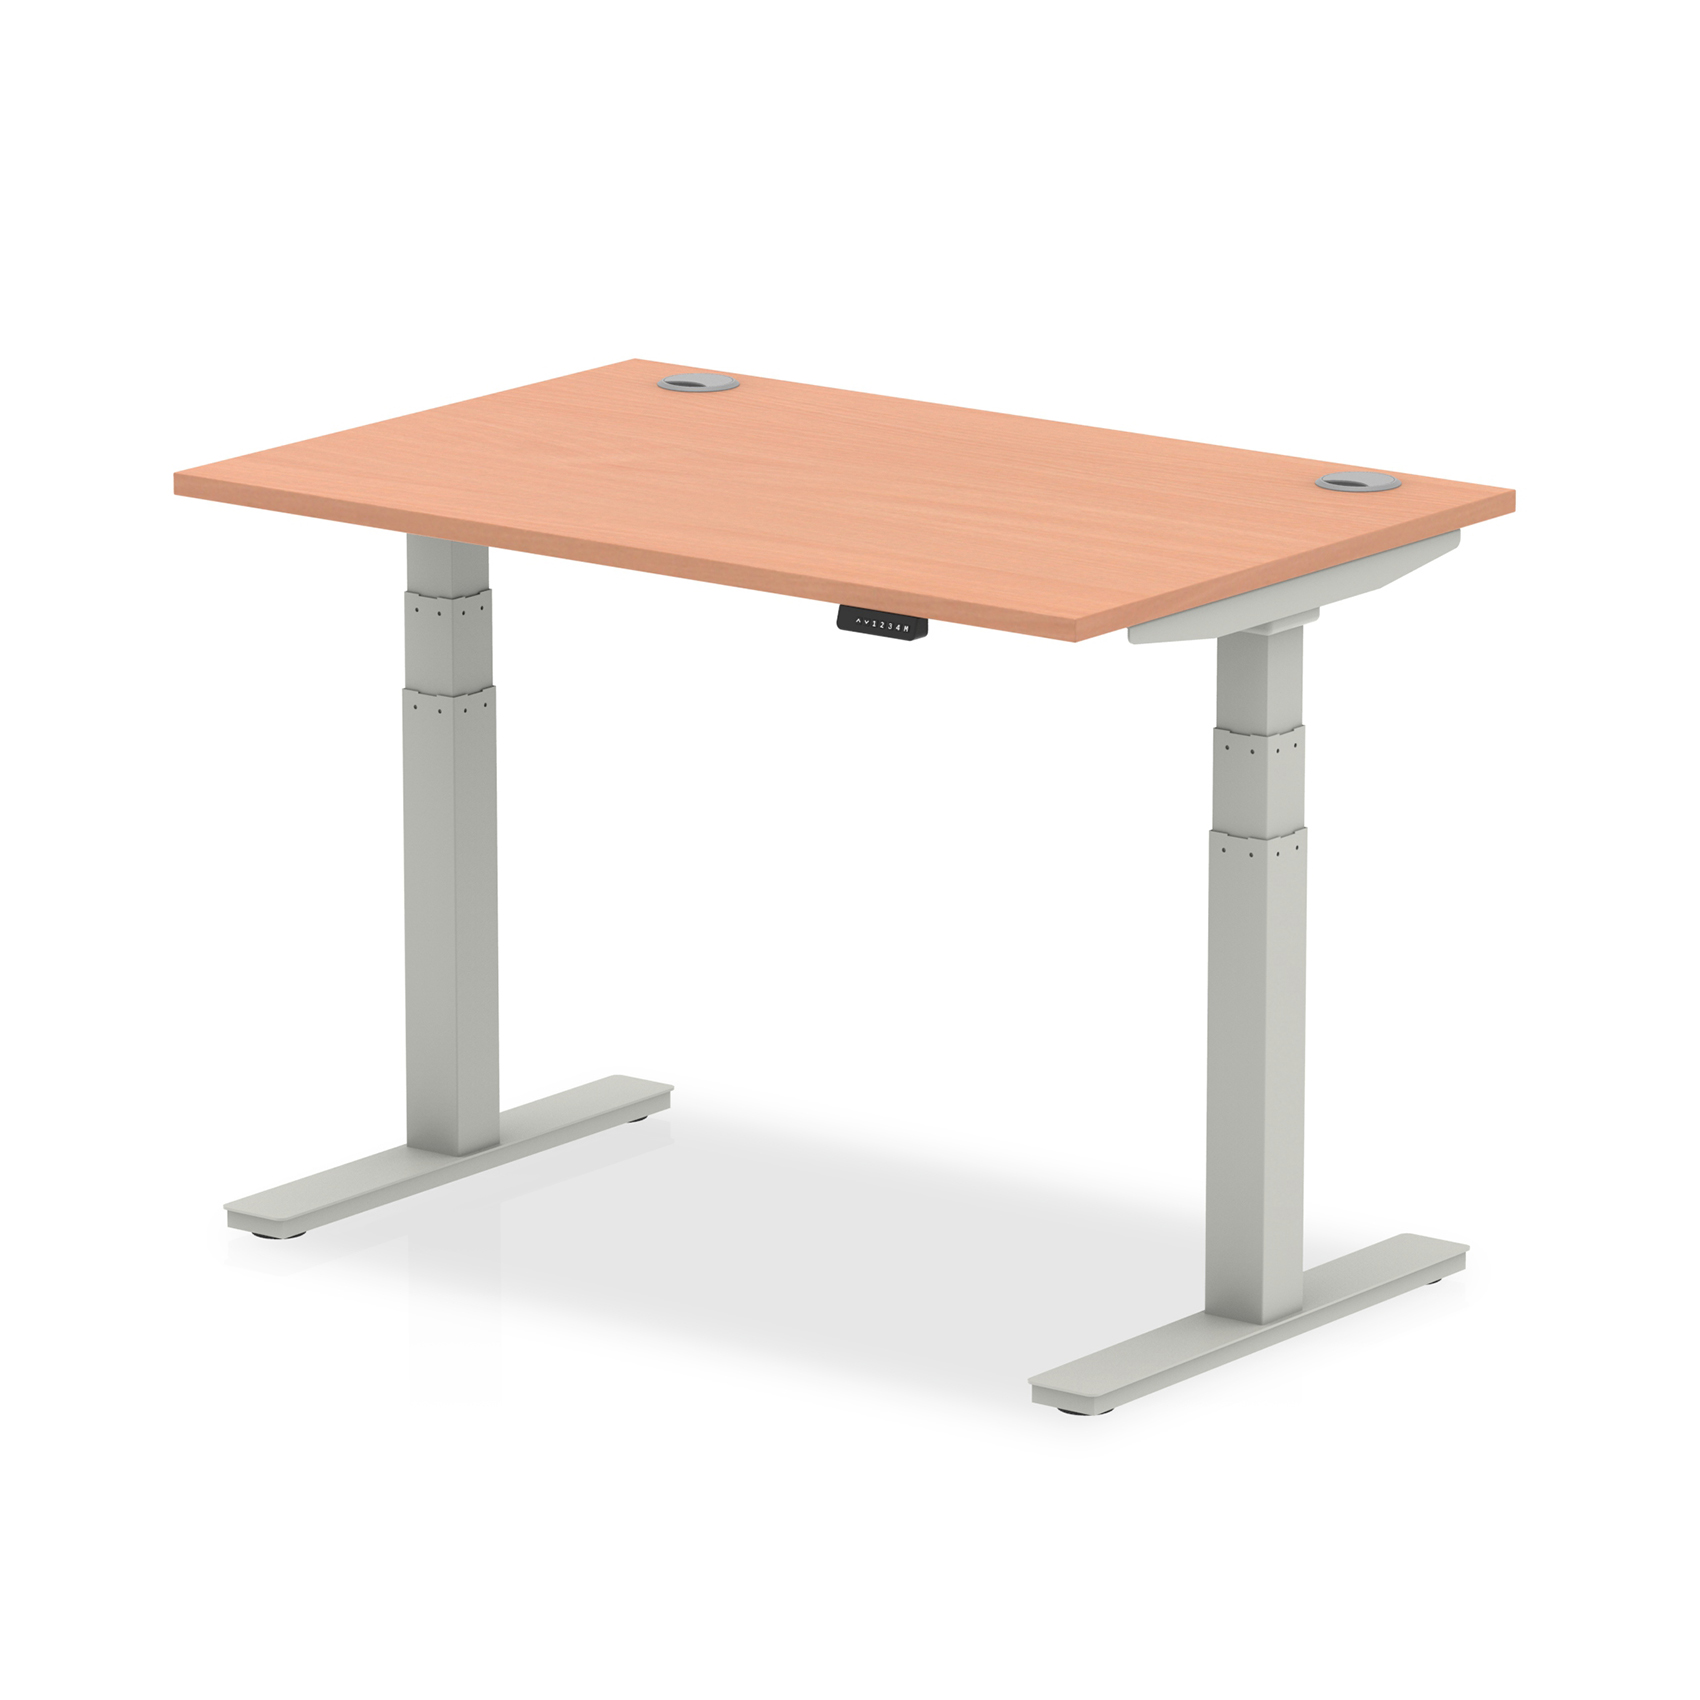 Trexus Sit Stand Desk With Cable Ports Silver Legs 1200x800mm Beech Ref HA01081